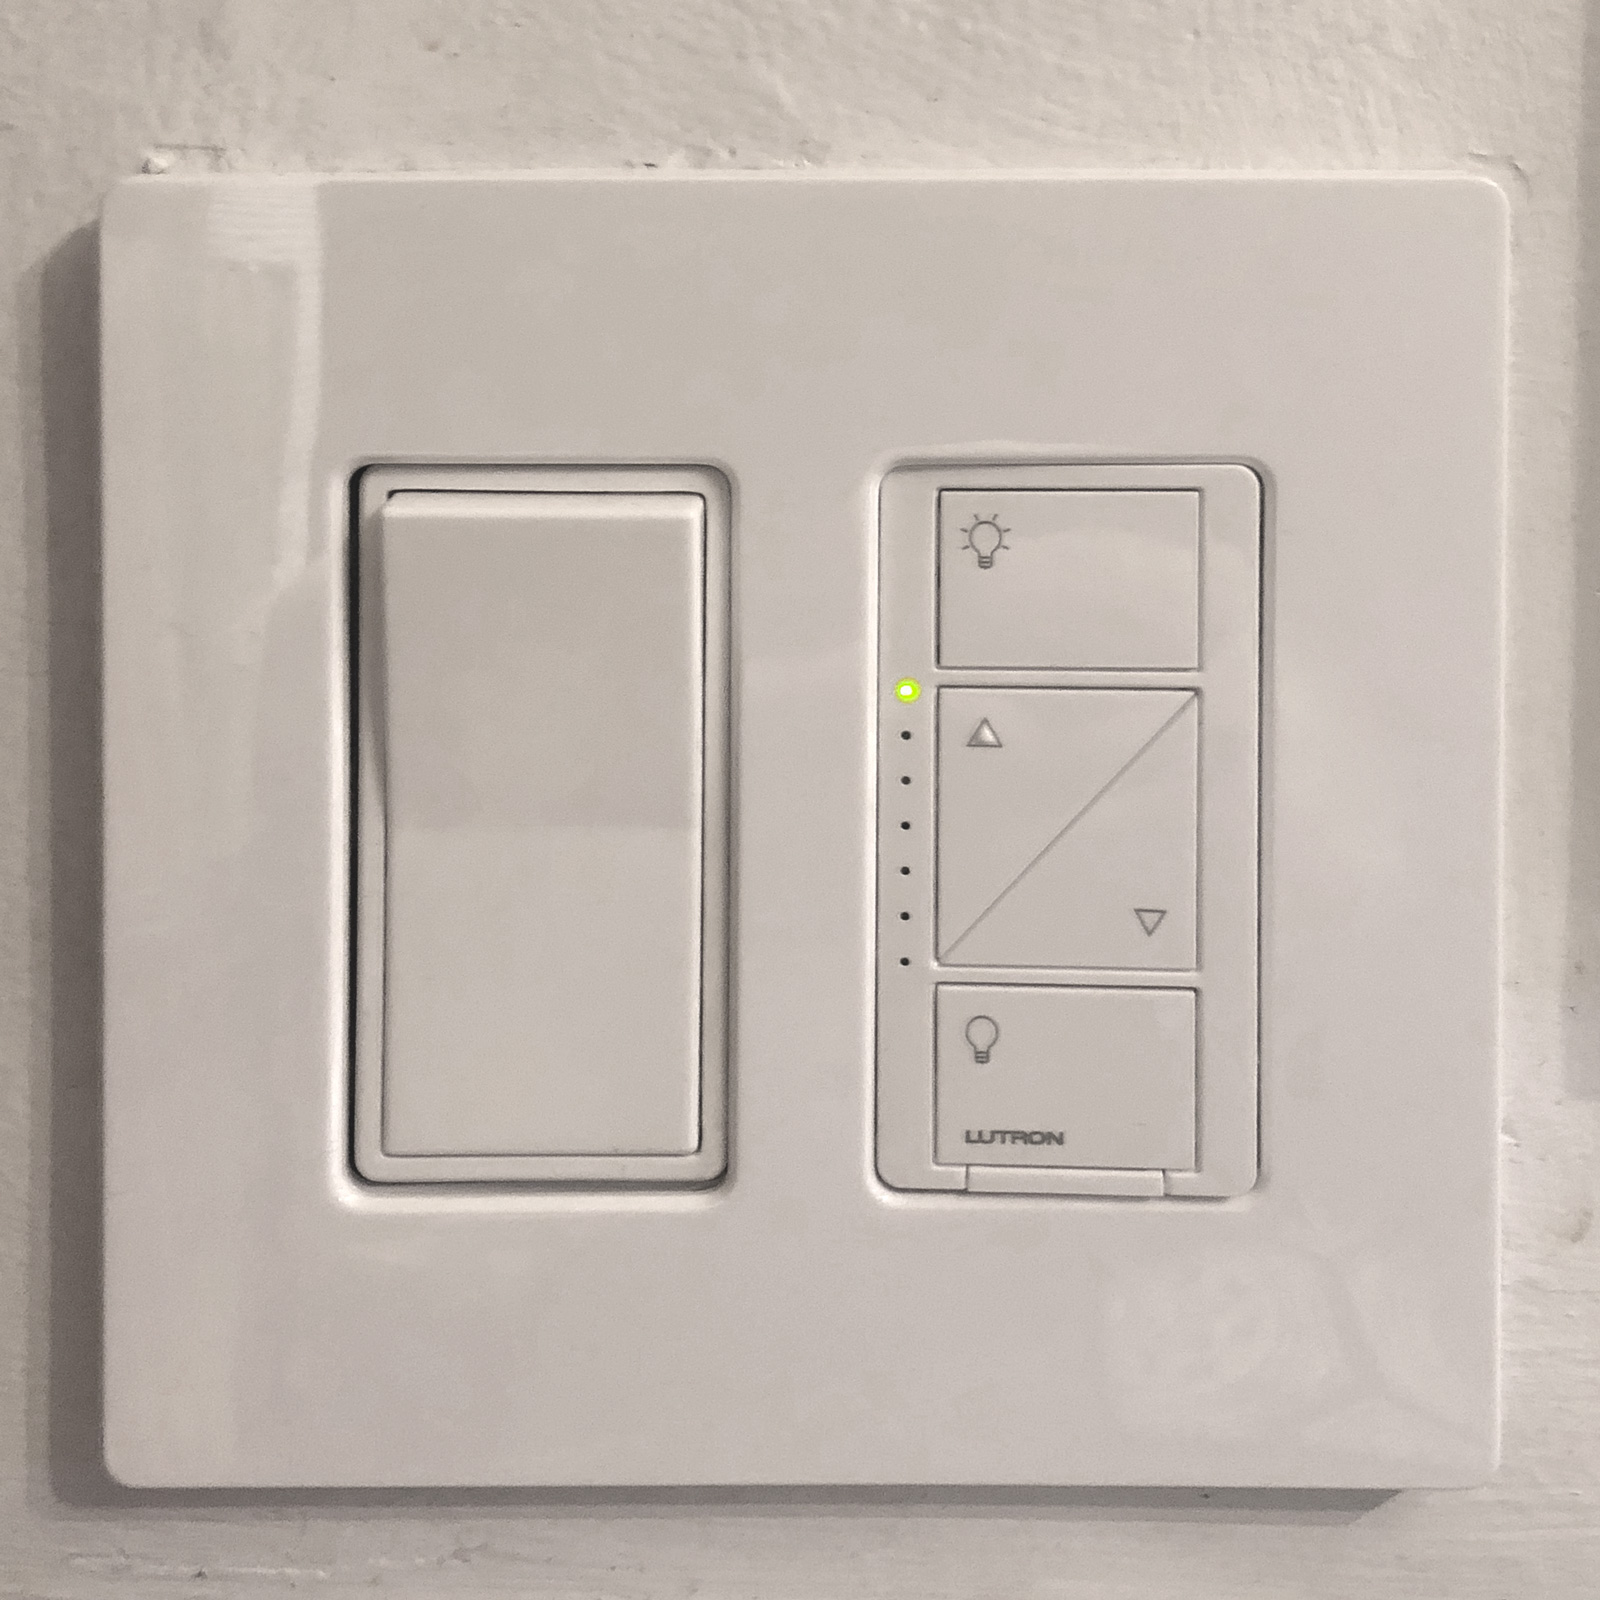 Dimmer Switch Lutron Caseta Dimmer Switch Review Homekit News And Reviews